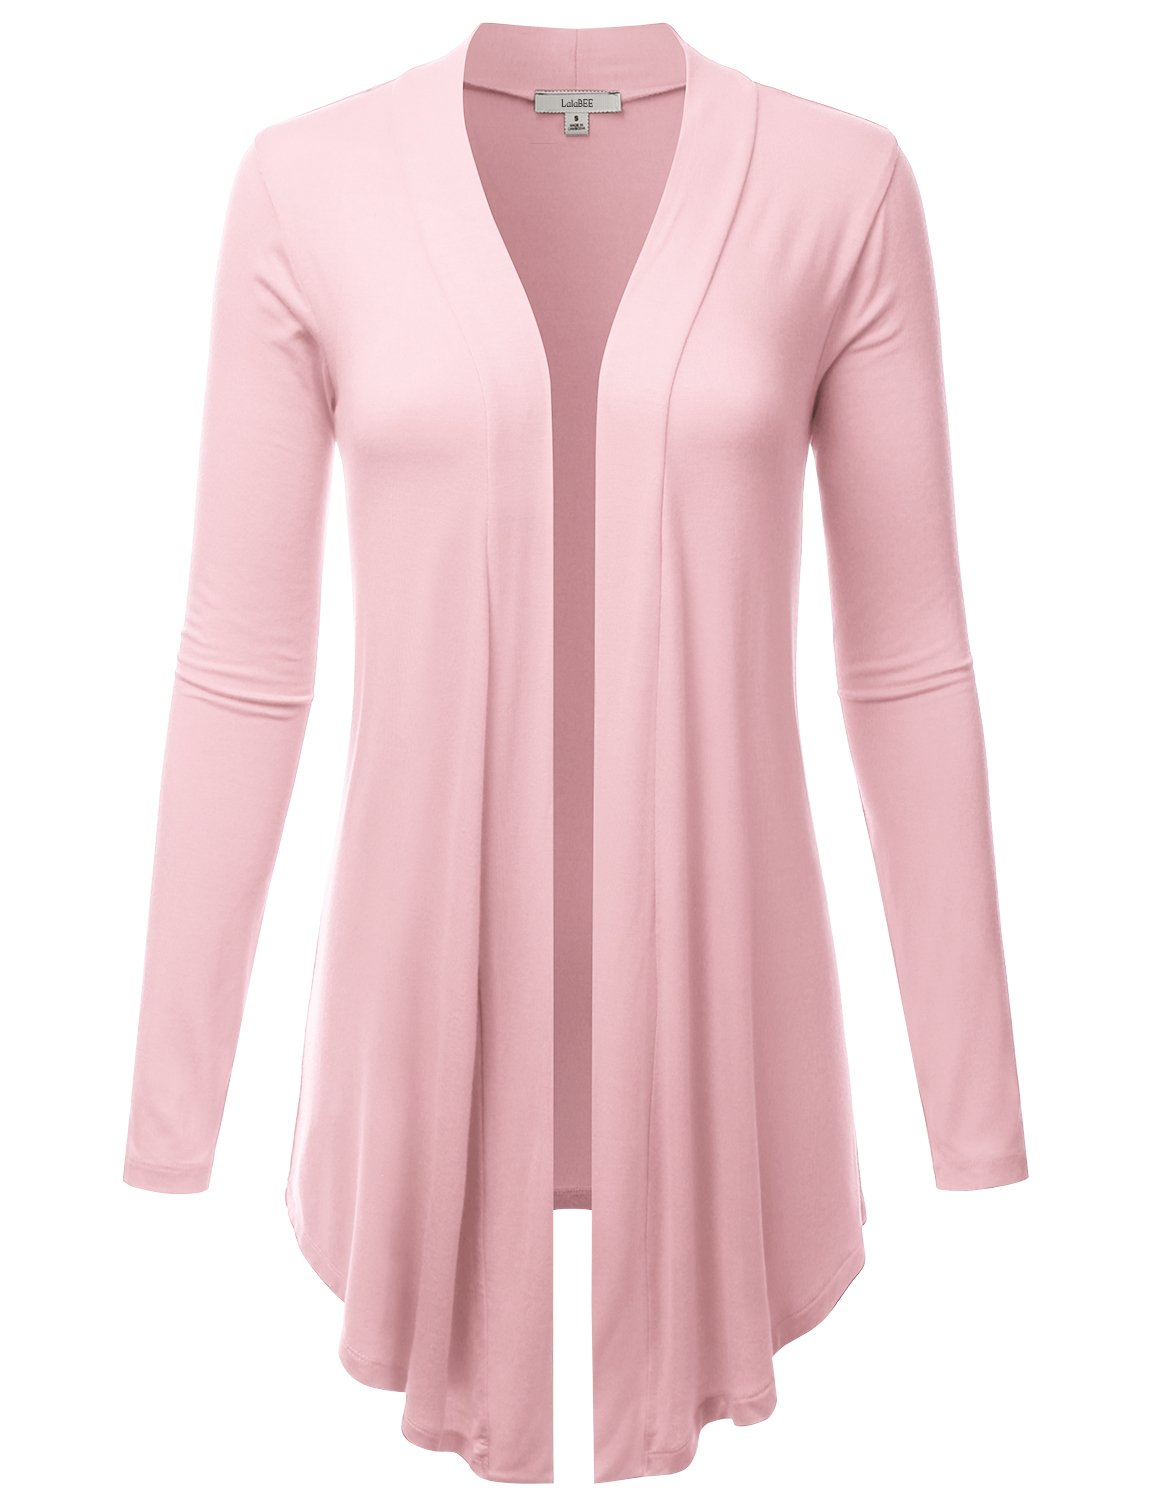 LALABEE Women's Draped Open-Front Long Sleeve Light Weight Cardigan-DPINK-S